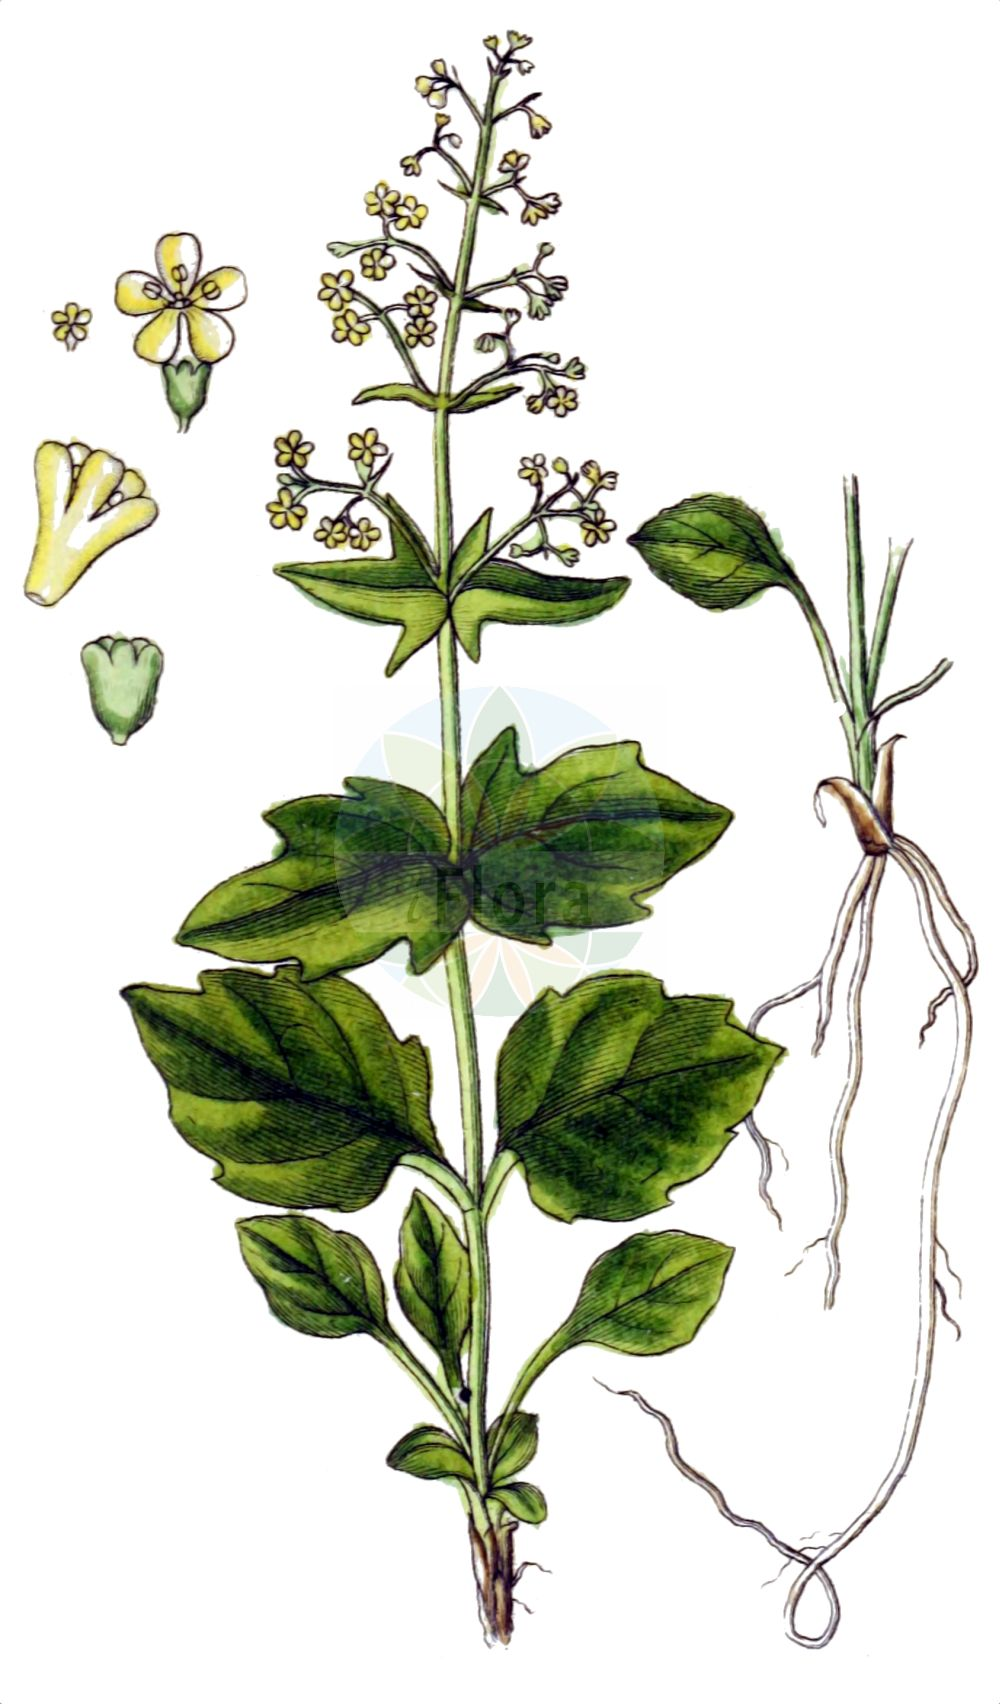 Historische Abbildung von Valeriana elongata. Das Bild zeigt Blatt, Bluete, Frucht und Same. ---- Historical Drawing of Valeriana elongata.The image is showing leaf, flower, fruit and seed.(Valeriana elongata,Valeriana elongata,Valeriana,Baldrian,Valerian,Caprifoliaceae,Geissblattgewaechse,Honeysuckle family,Blatt,Bluete,Frucht,Same,leaf,flower,fruit,seed,Sturm (1796f))